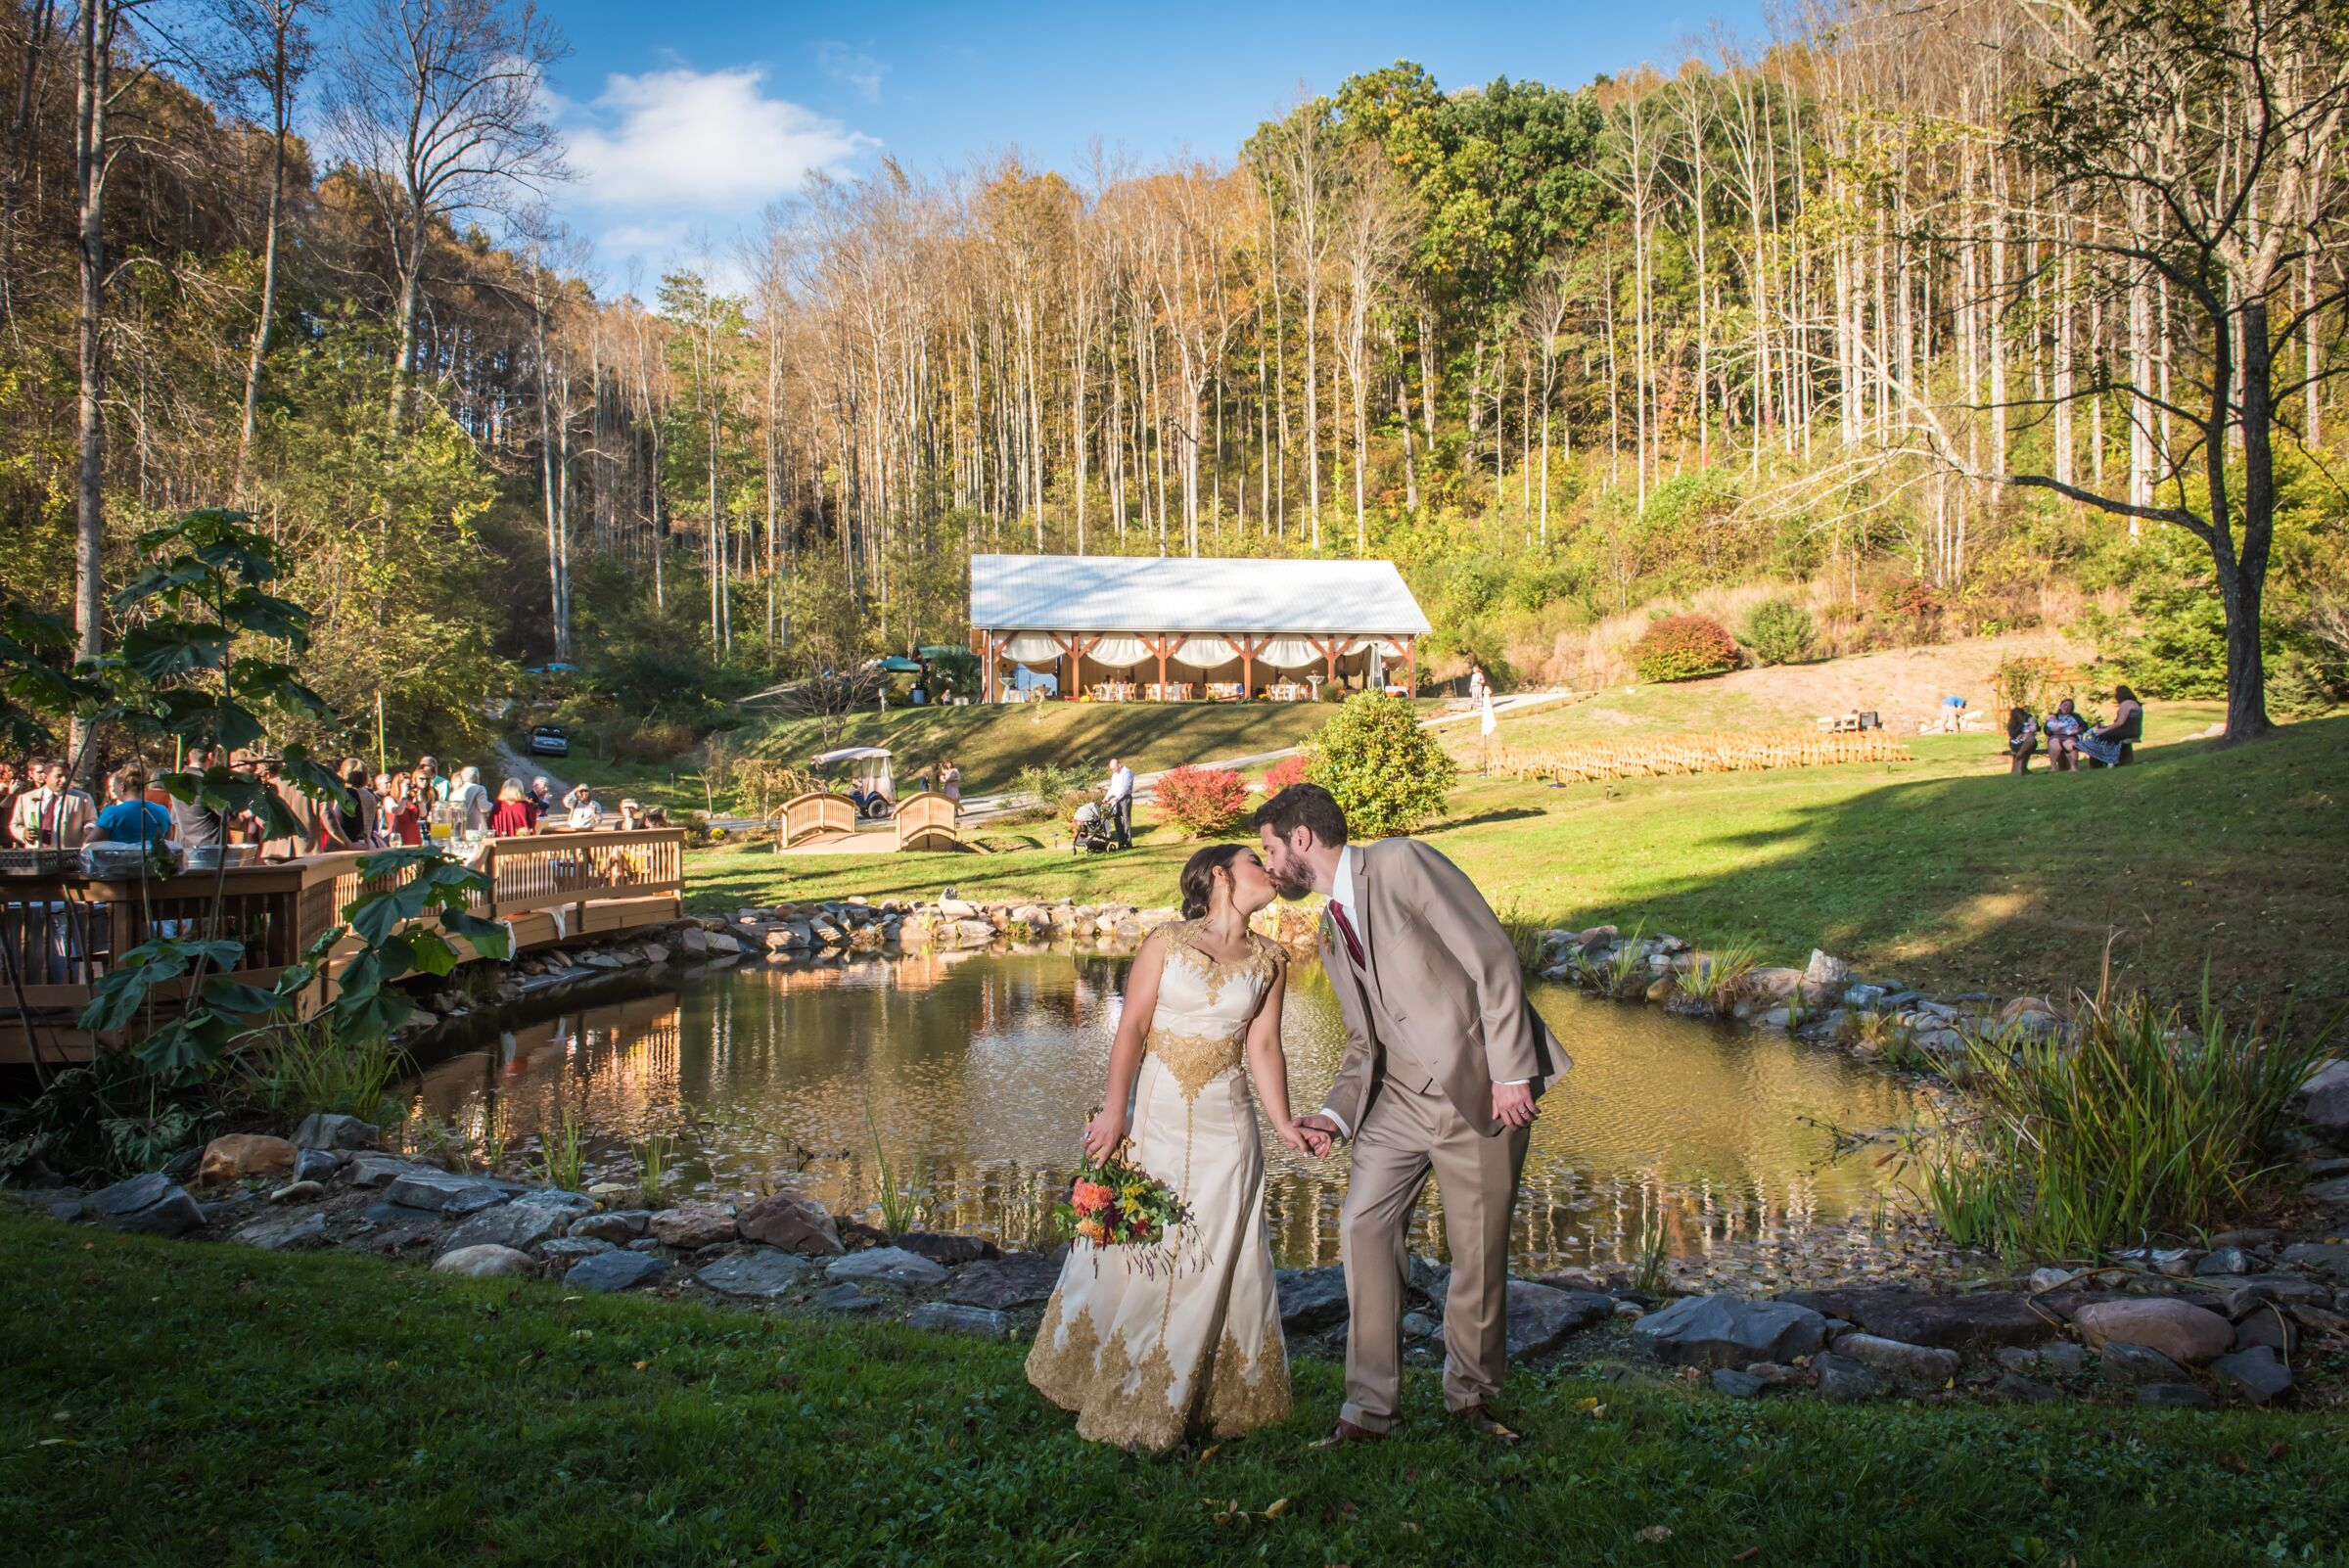 Wedding reception venues in asheville nc the knot brahma ridge event center junglespirit Image collections